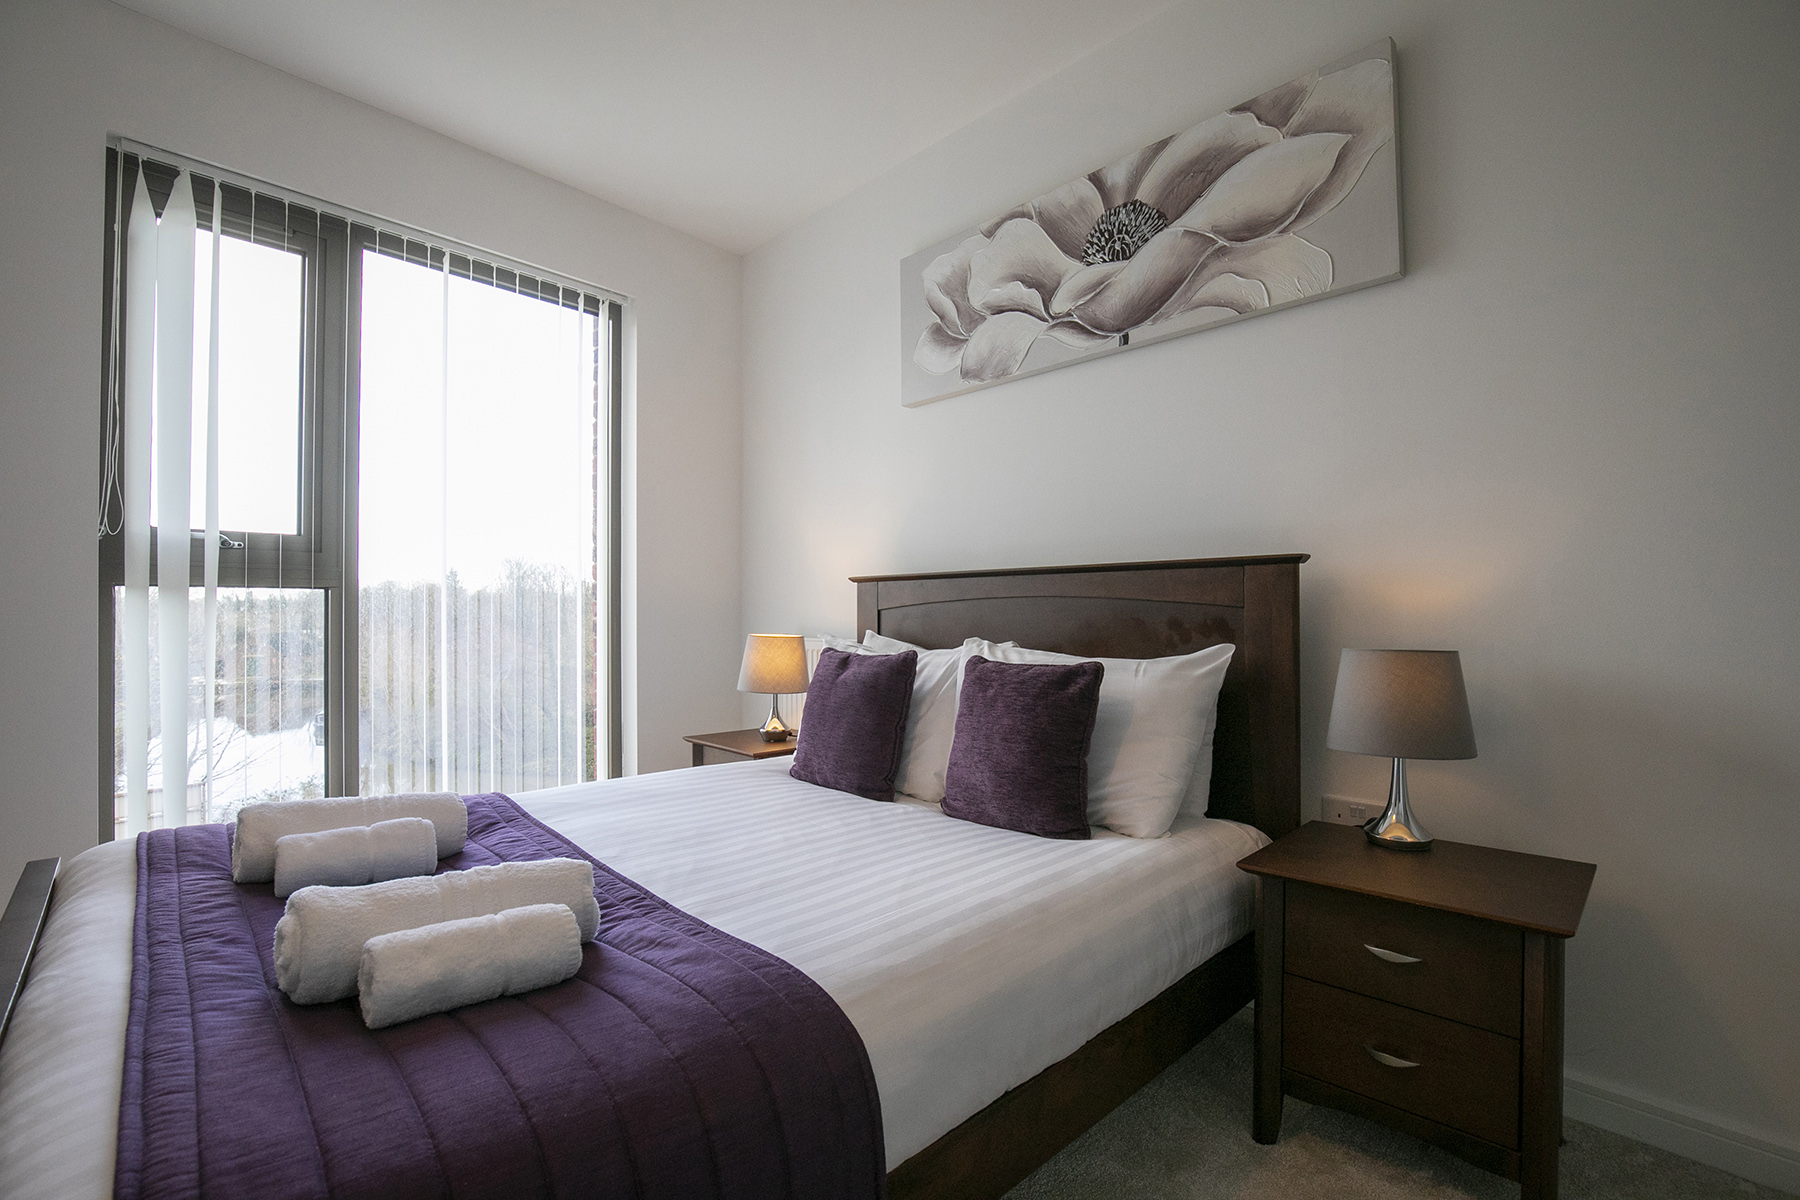 Bed at Wey Corner Apartment, Centre, Guildford - Citybase Apartments